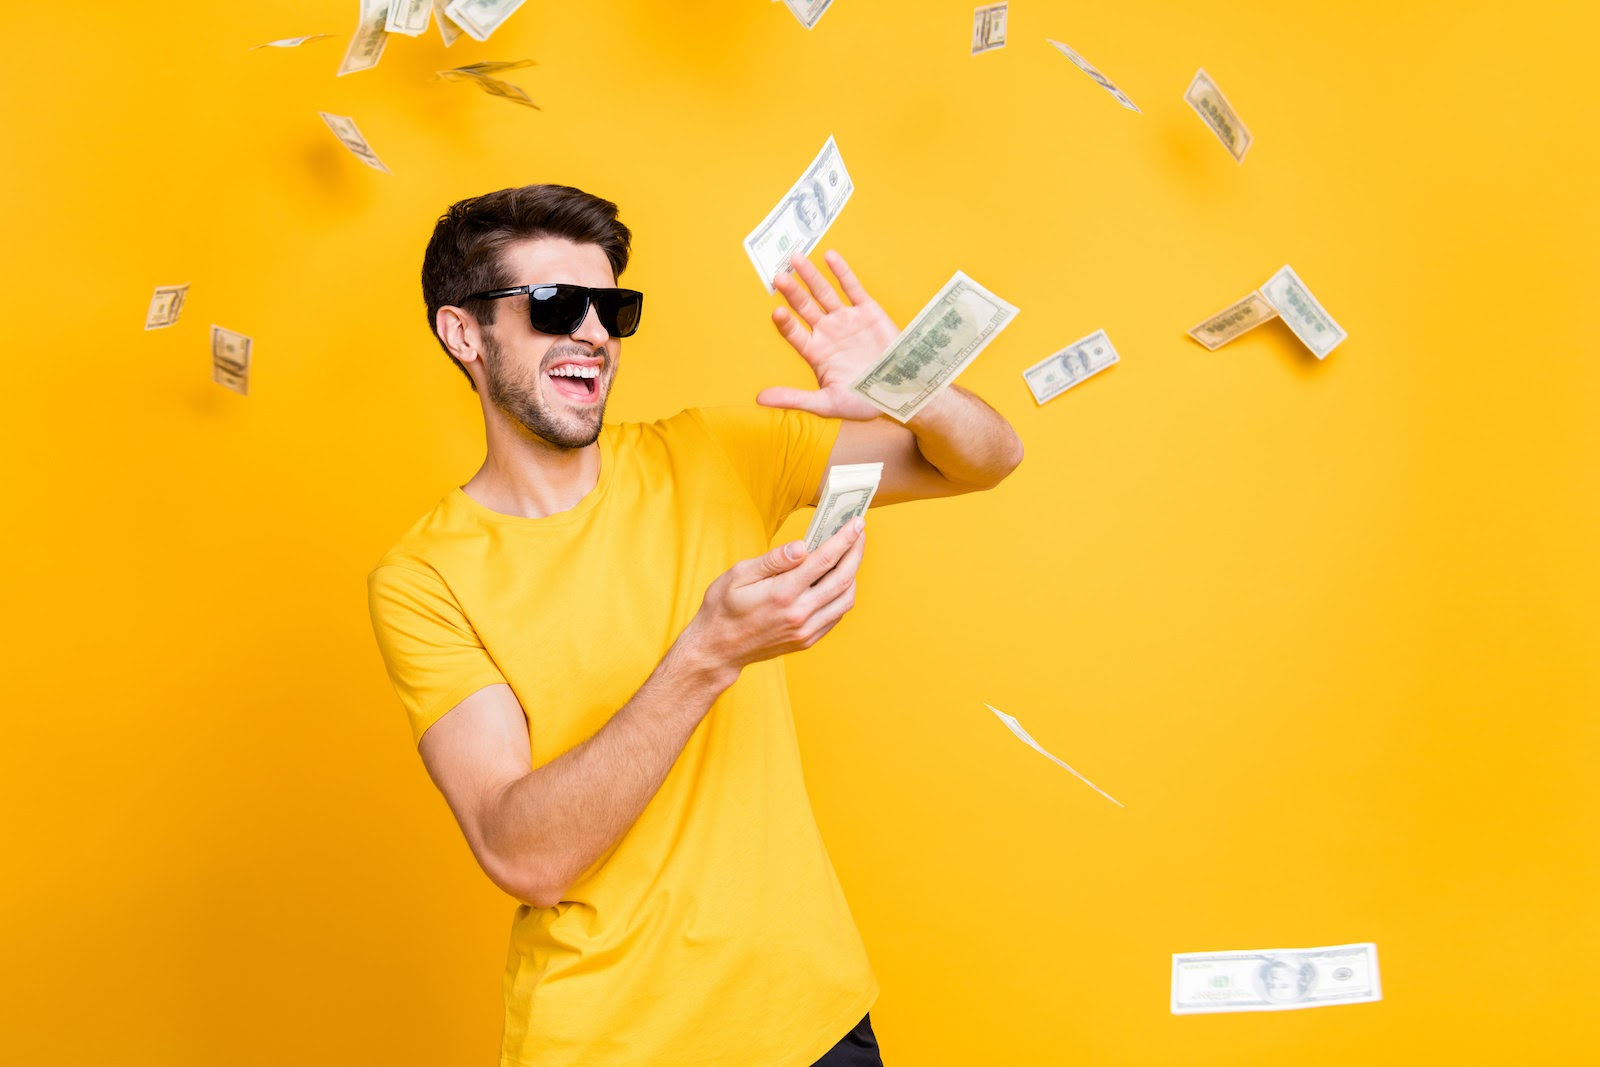 A man throws money in the air to represent investing in experiential marketing